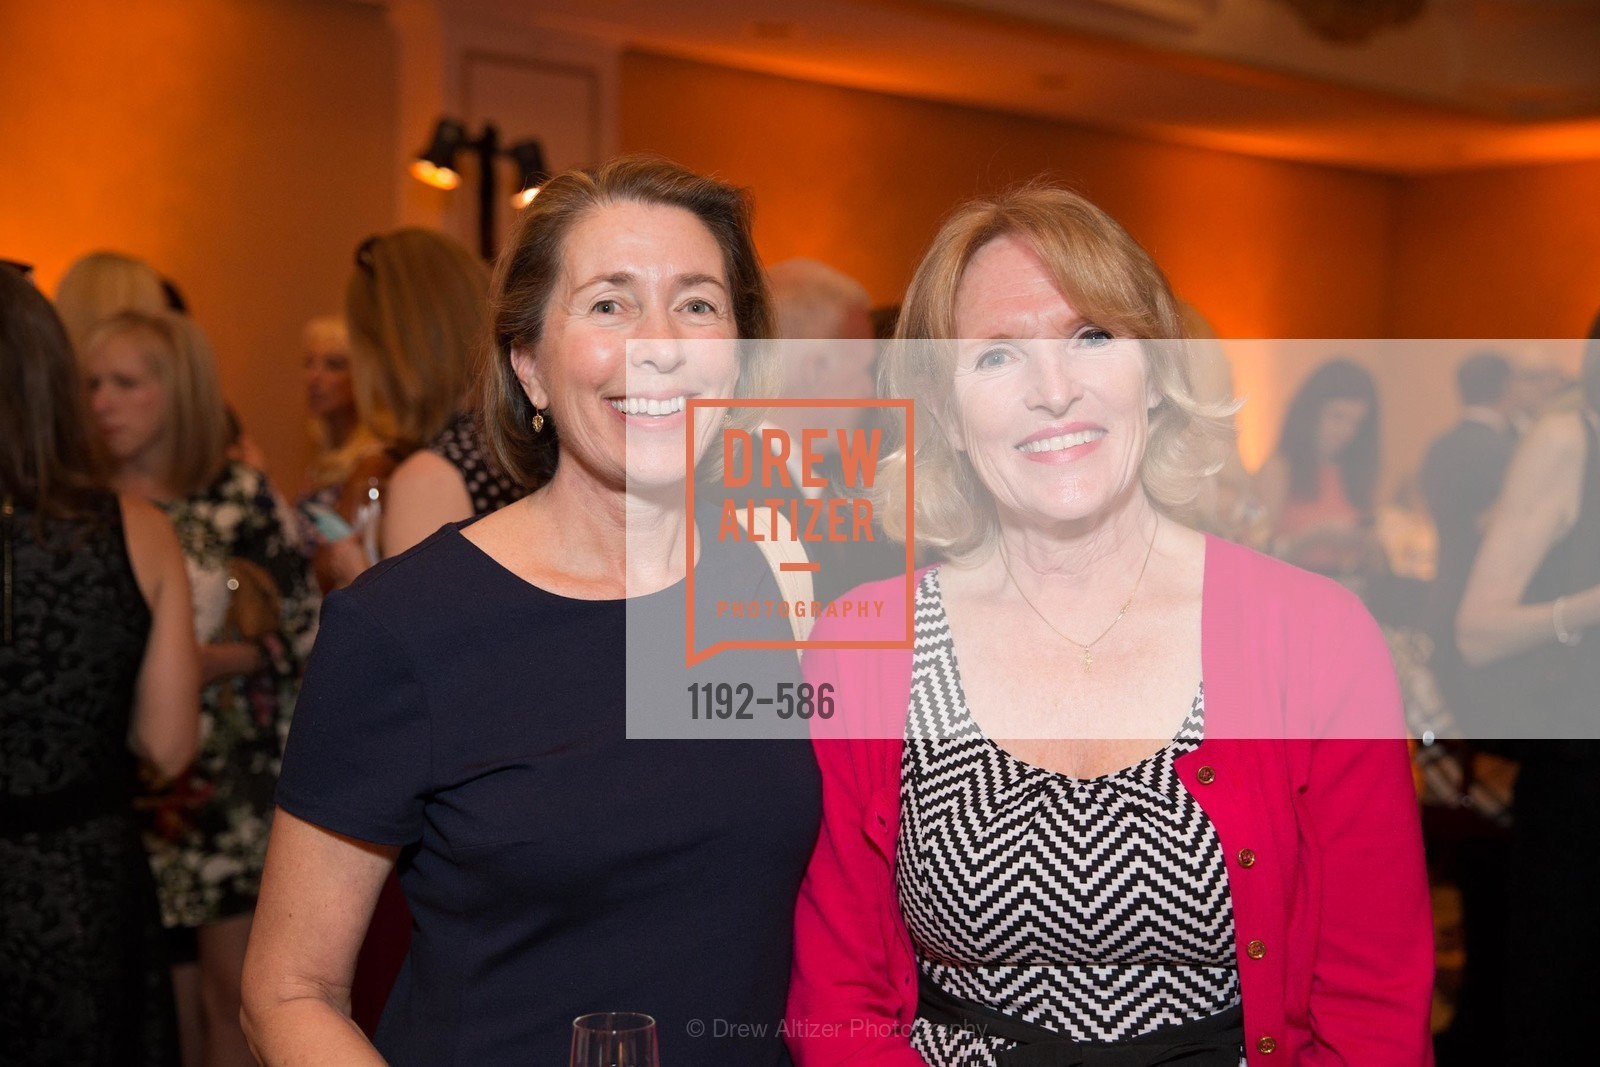 Barbara Dukas, Sue Farley, 2014 Bay Area ARTHRITIS AUXILLIARY Benefit & Fashion Show, US, October 2nd, 2014,Drew Altizer, Drew Altizer Photography, full-service event agency, private events, San Francisco photographer, photographer California